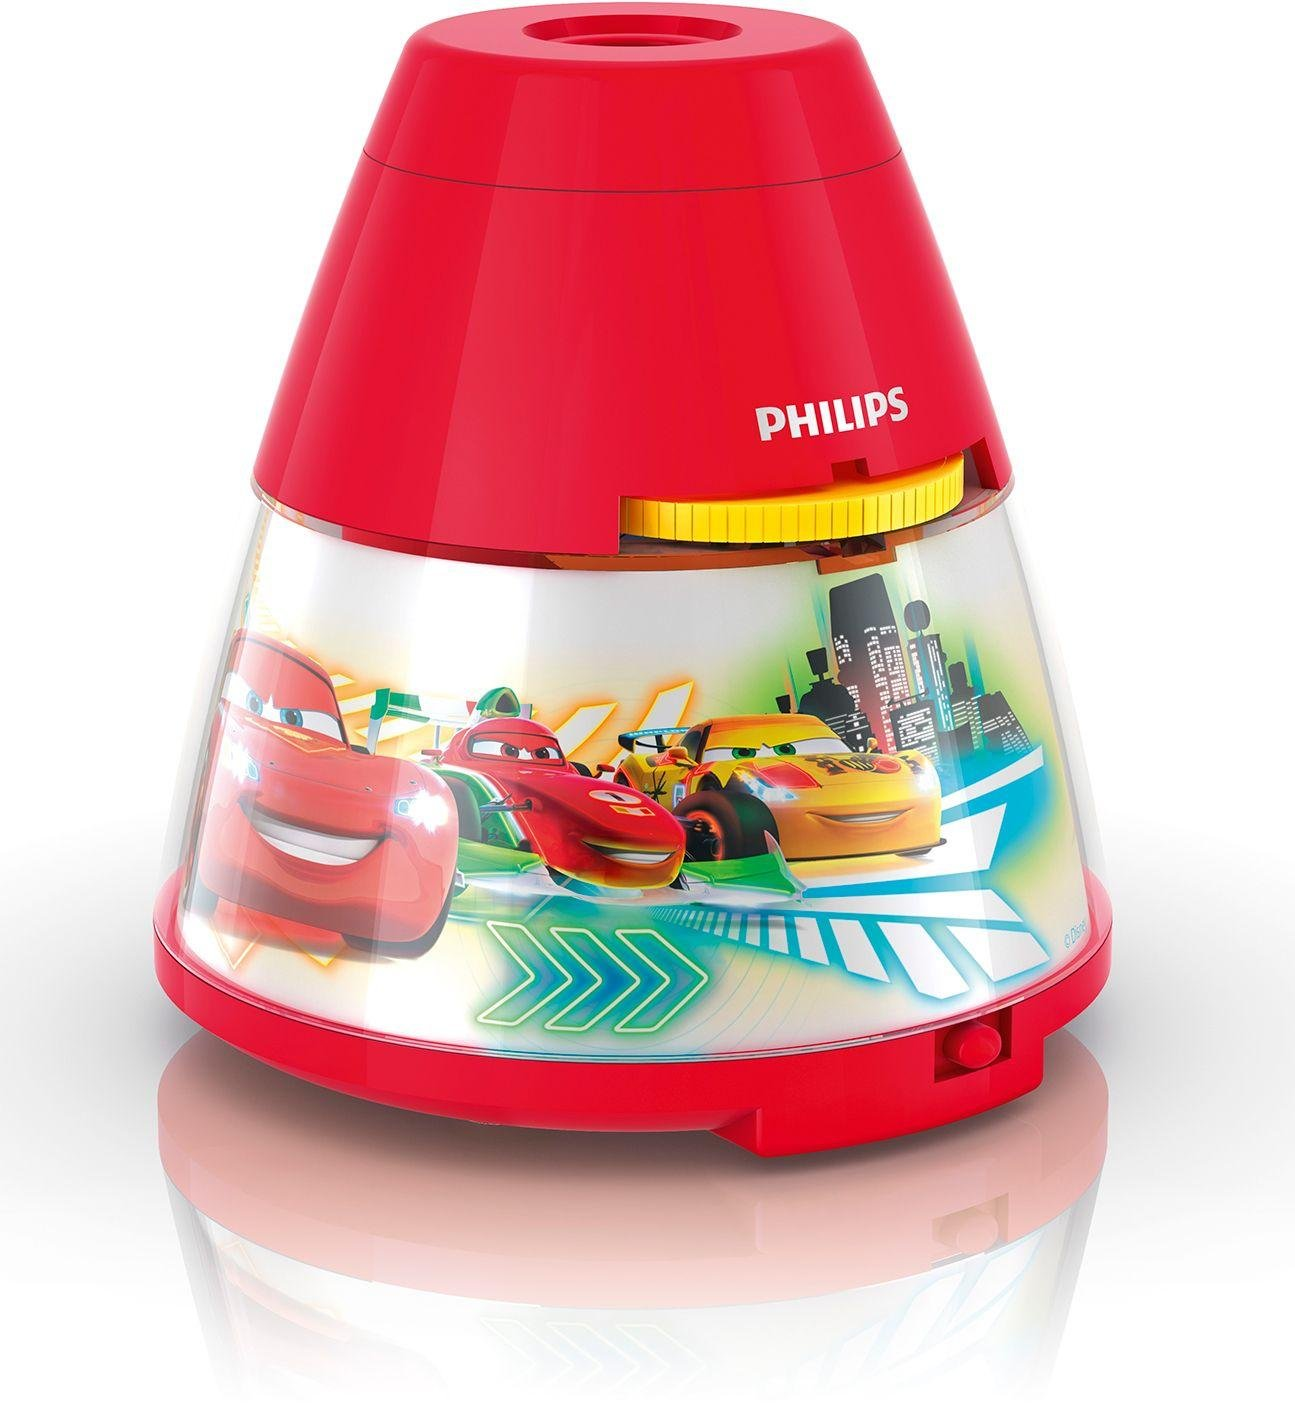 Philips - Disney Cars LED Projector - Red